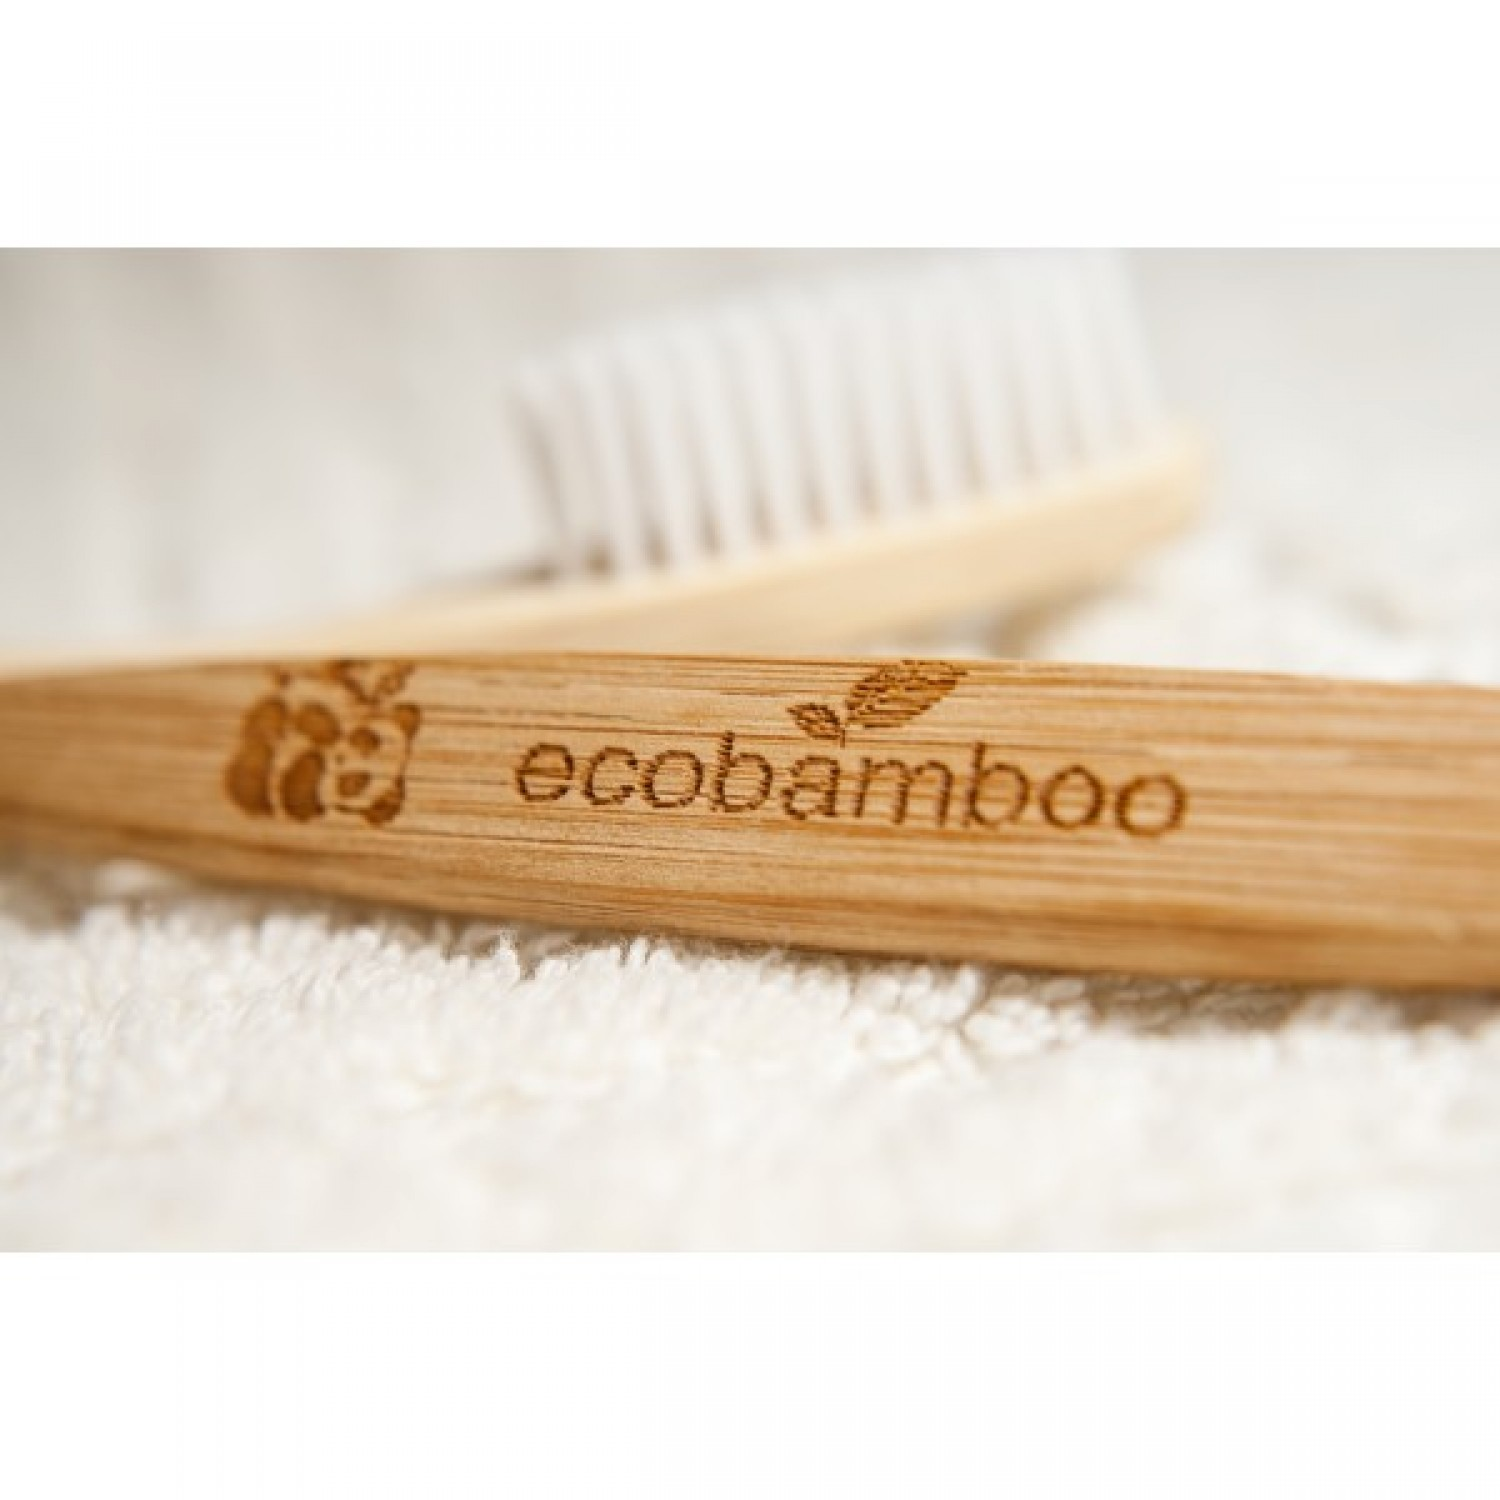 Eco toothbrush for adults made of bamboo | ecobambo